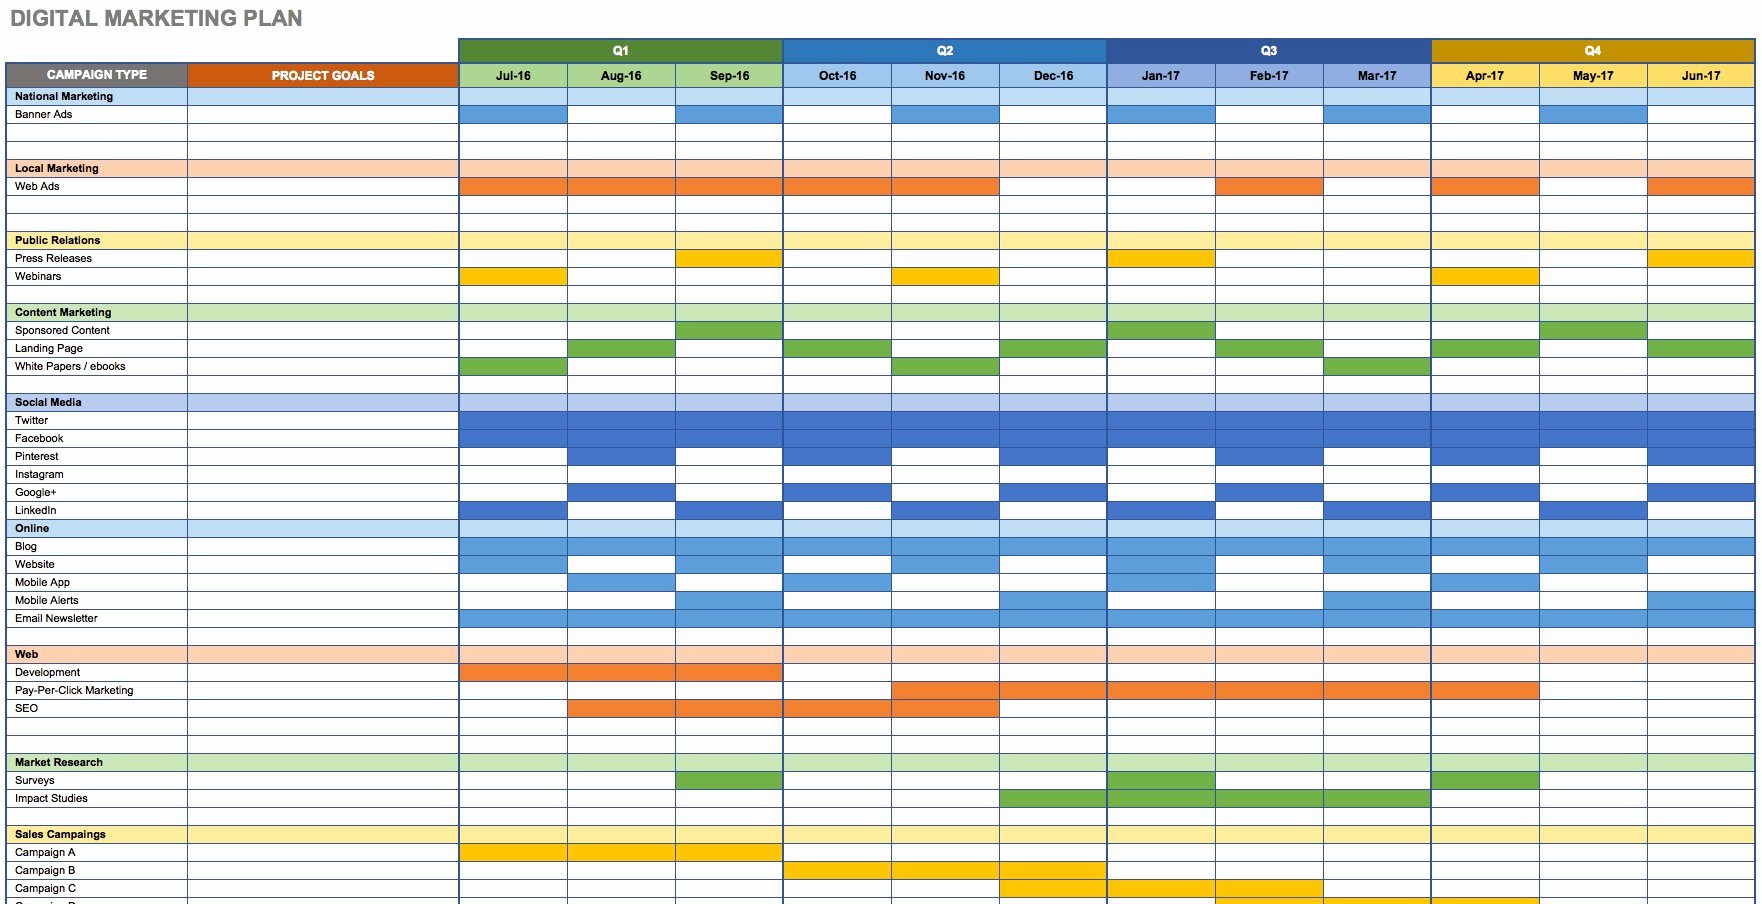 Marketing Timeline Template Excel Elegant Free Marketing Plan Templates for Excel Smartsheet